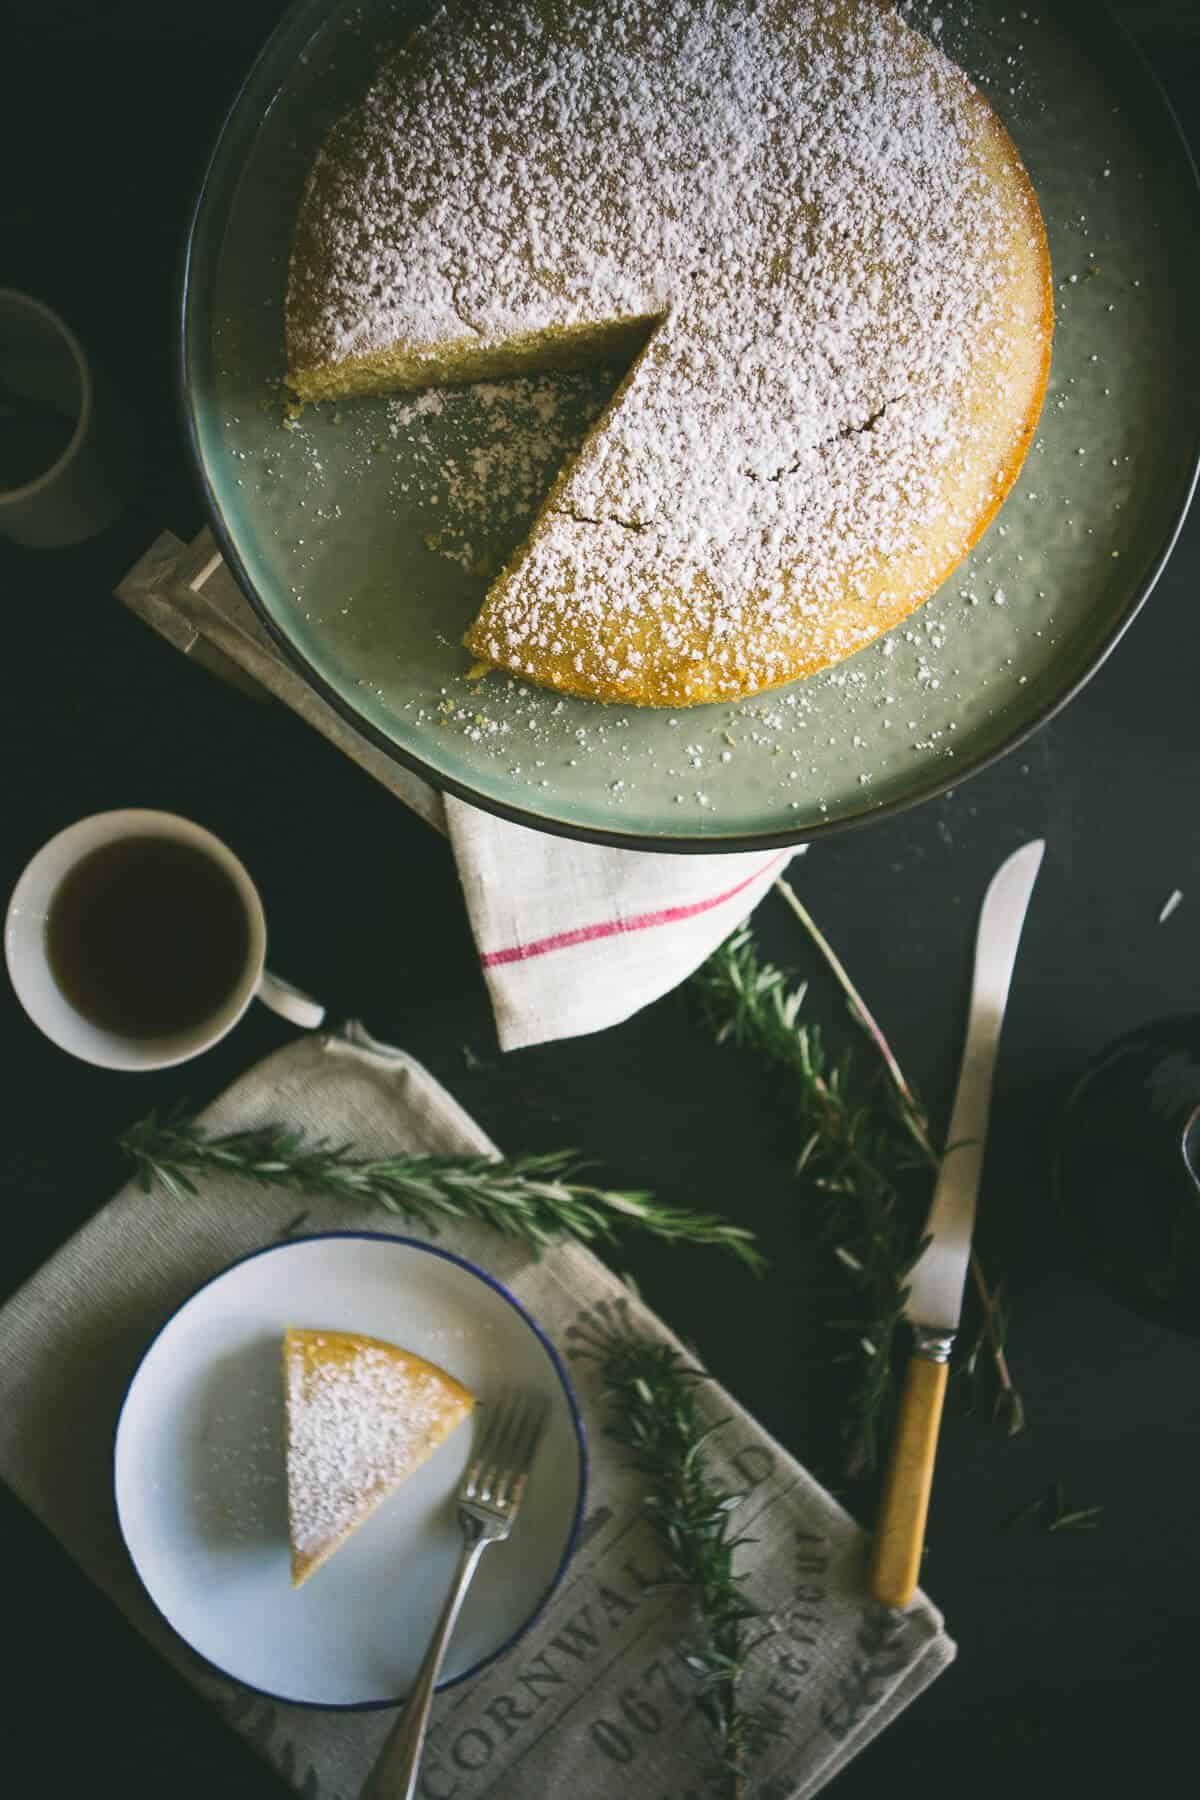 a birds eye view of a sliced cake with a cup of tea and a knife next to it